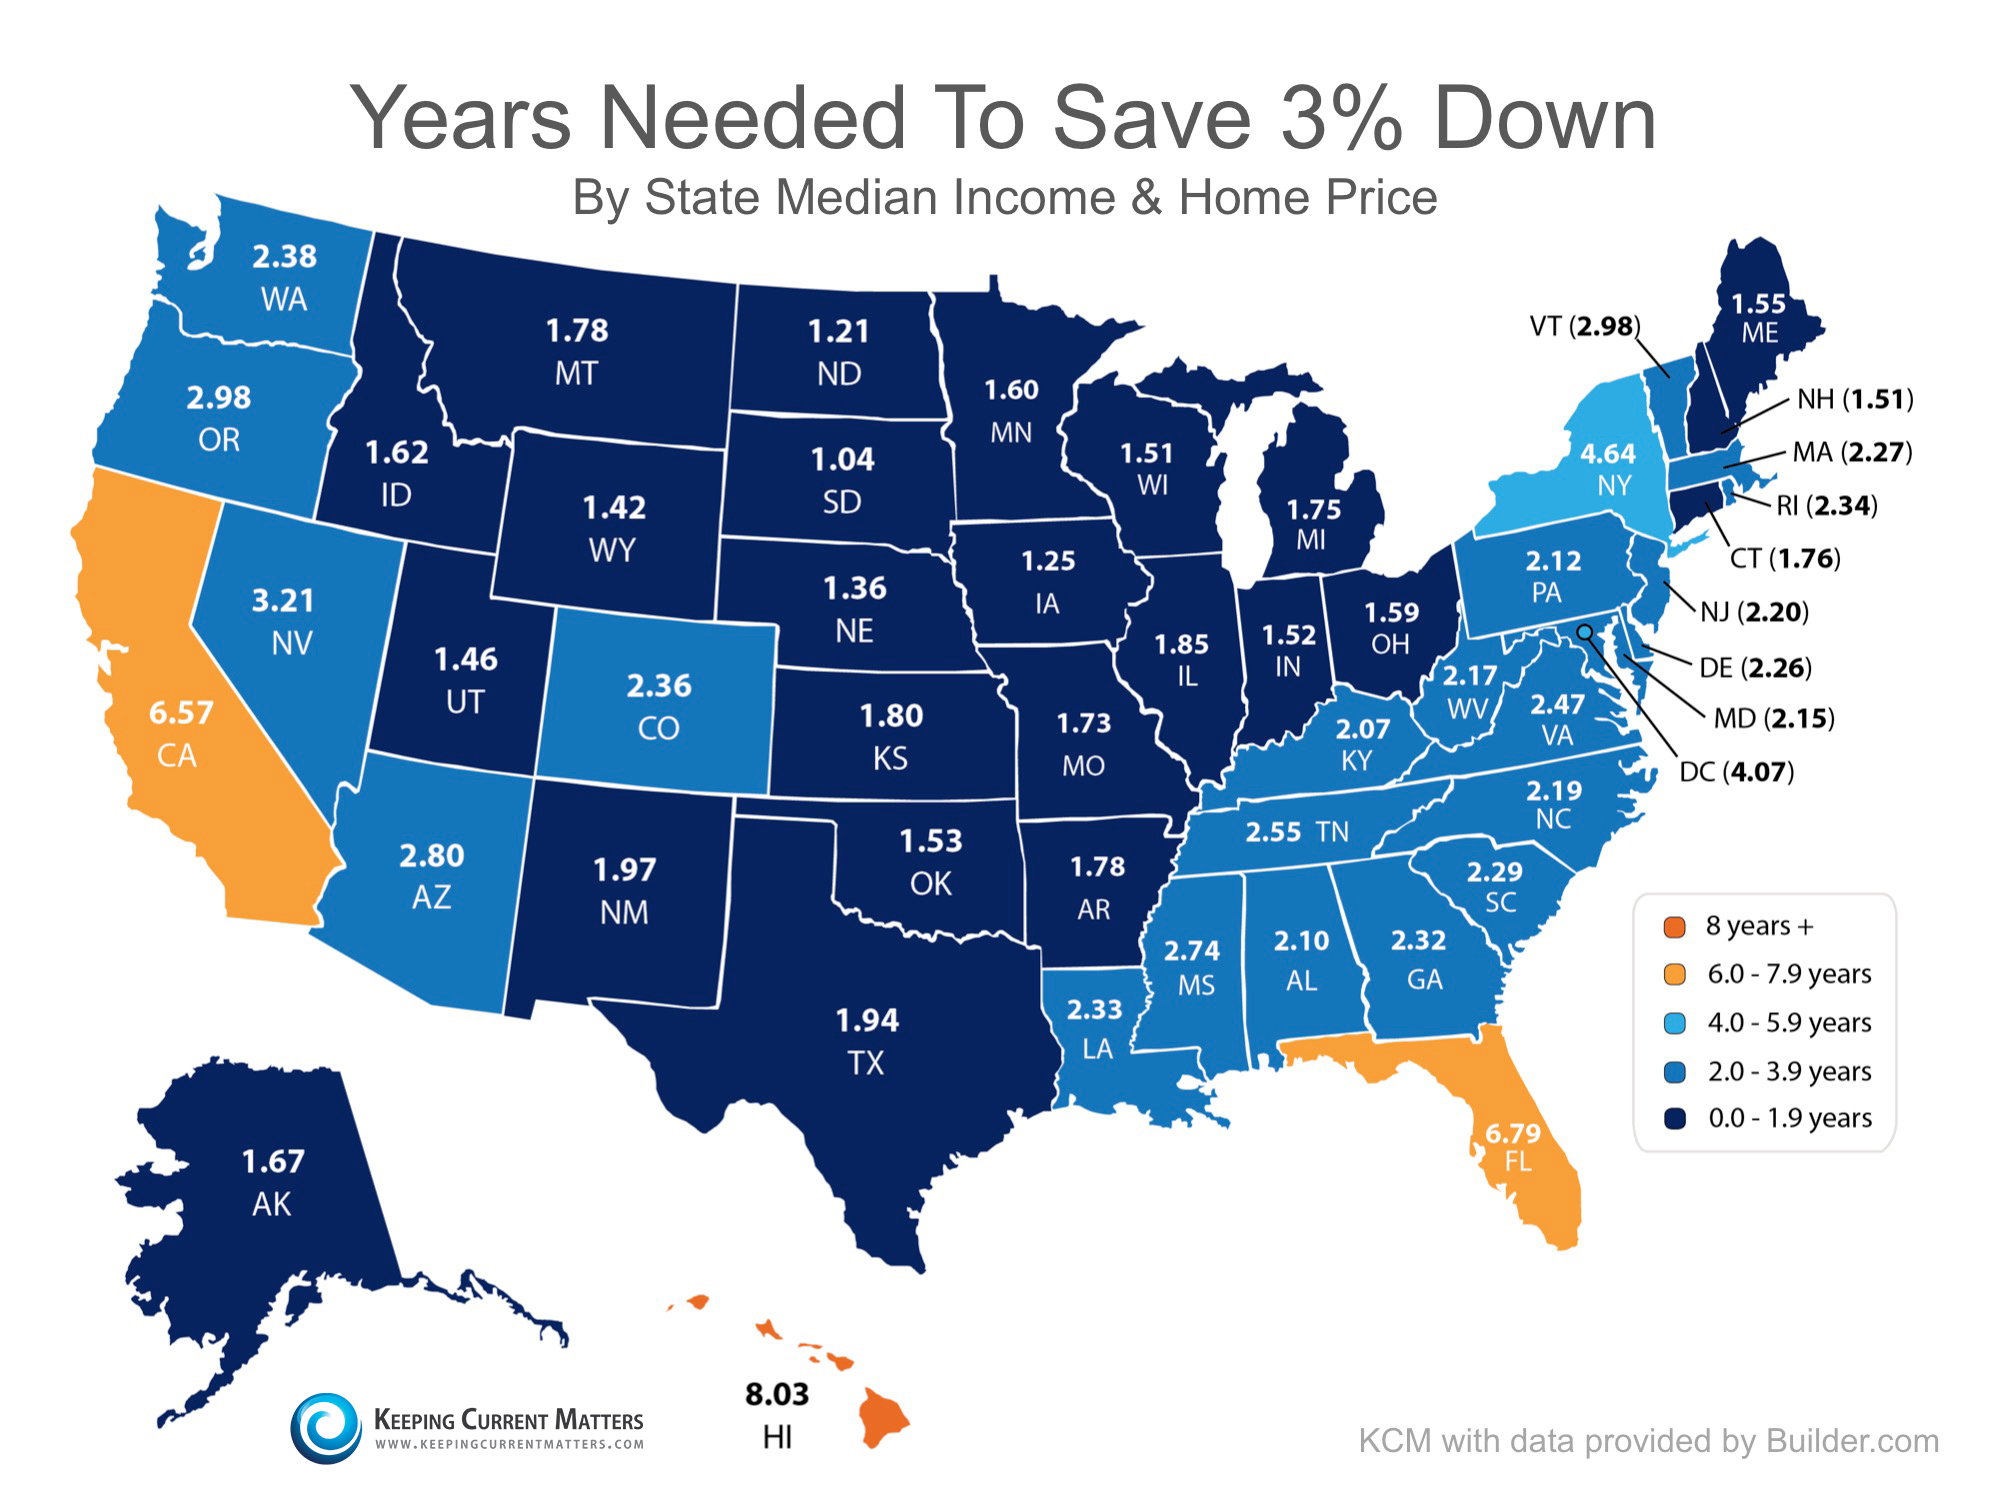 Years Needed to Save 3% Down | Keeping Current Matters